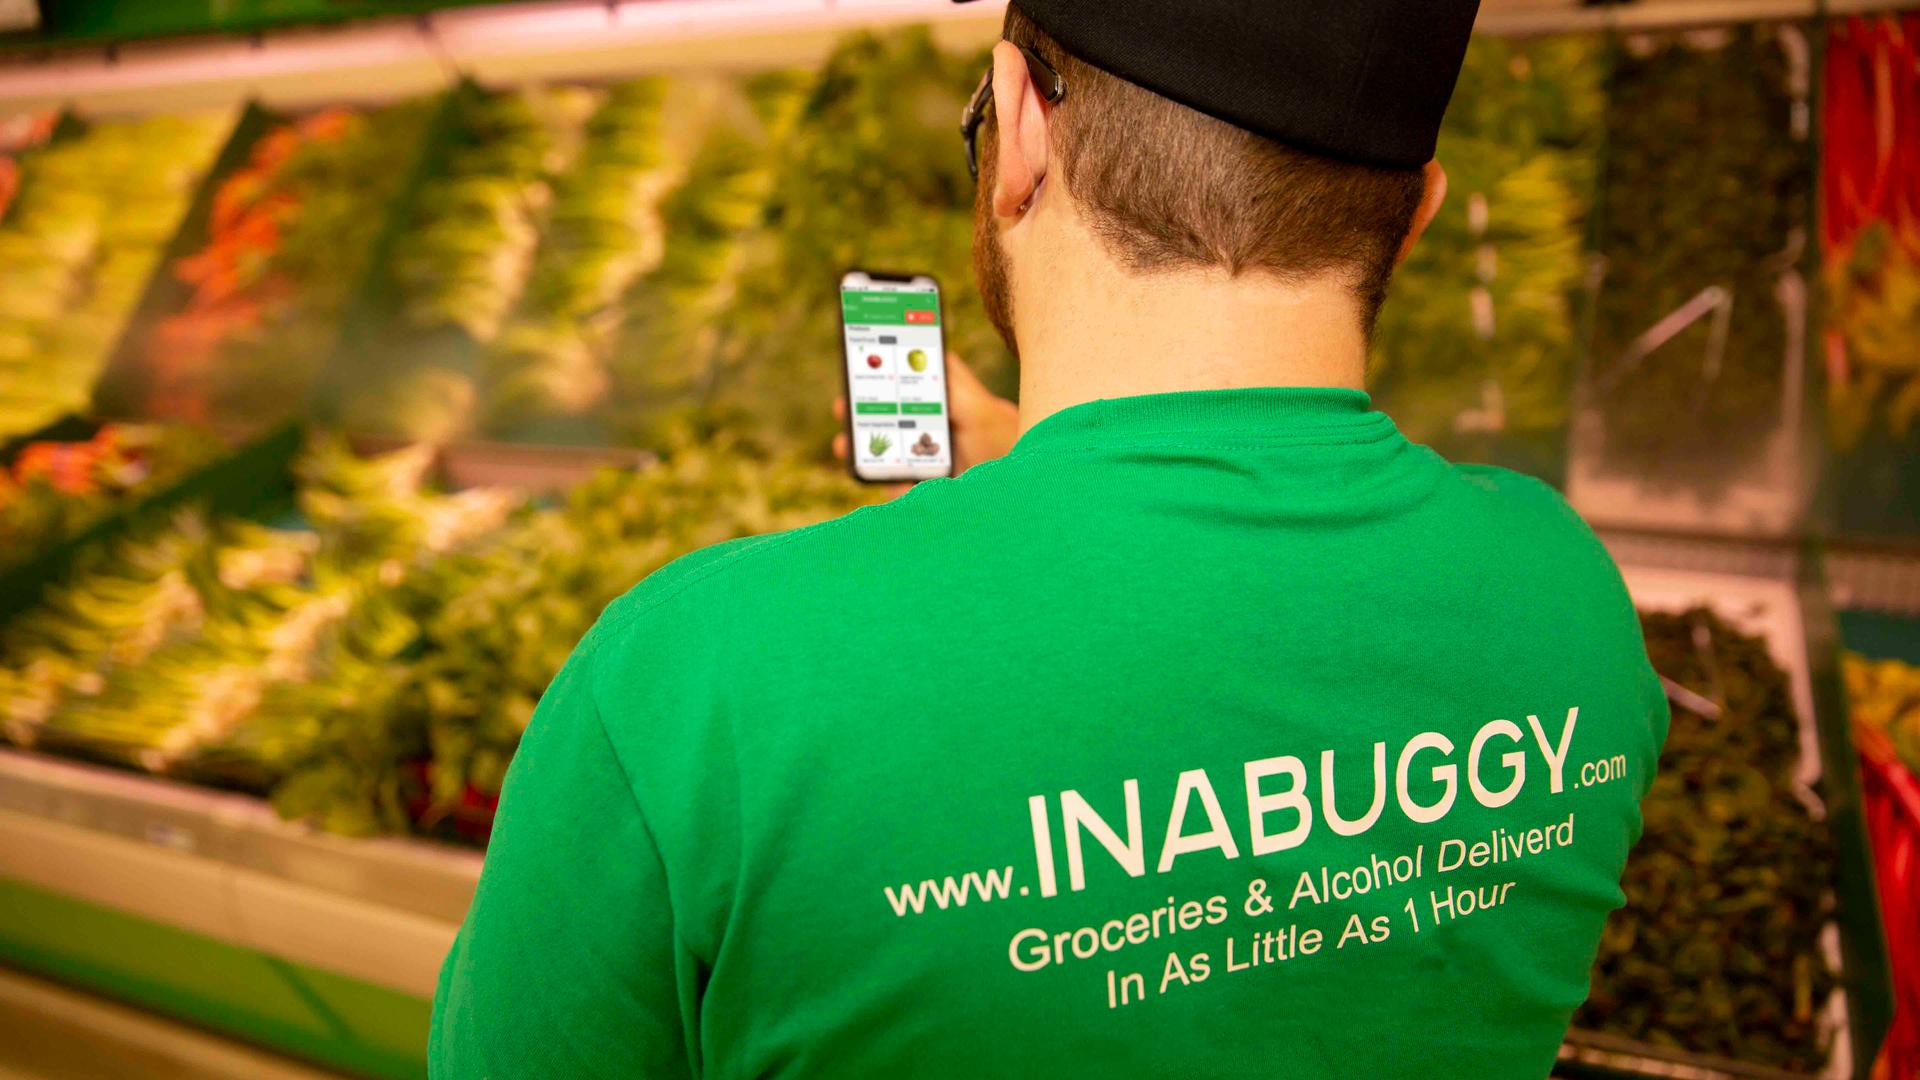 Inabuggy grocery and alcohol delivery service